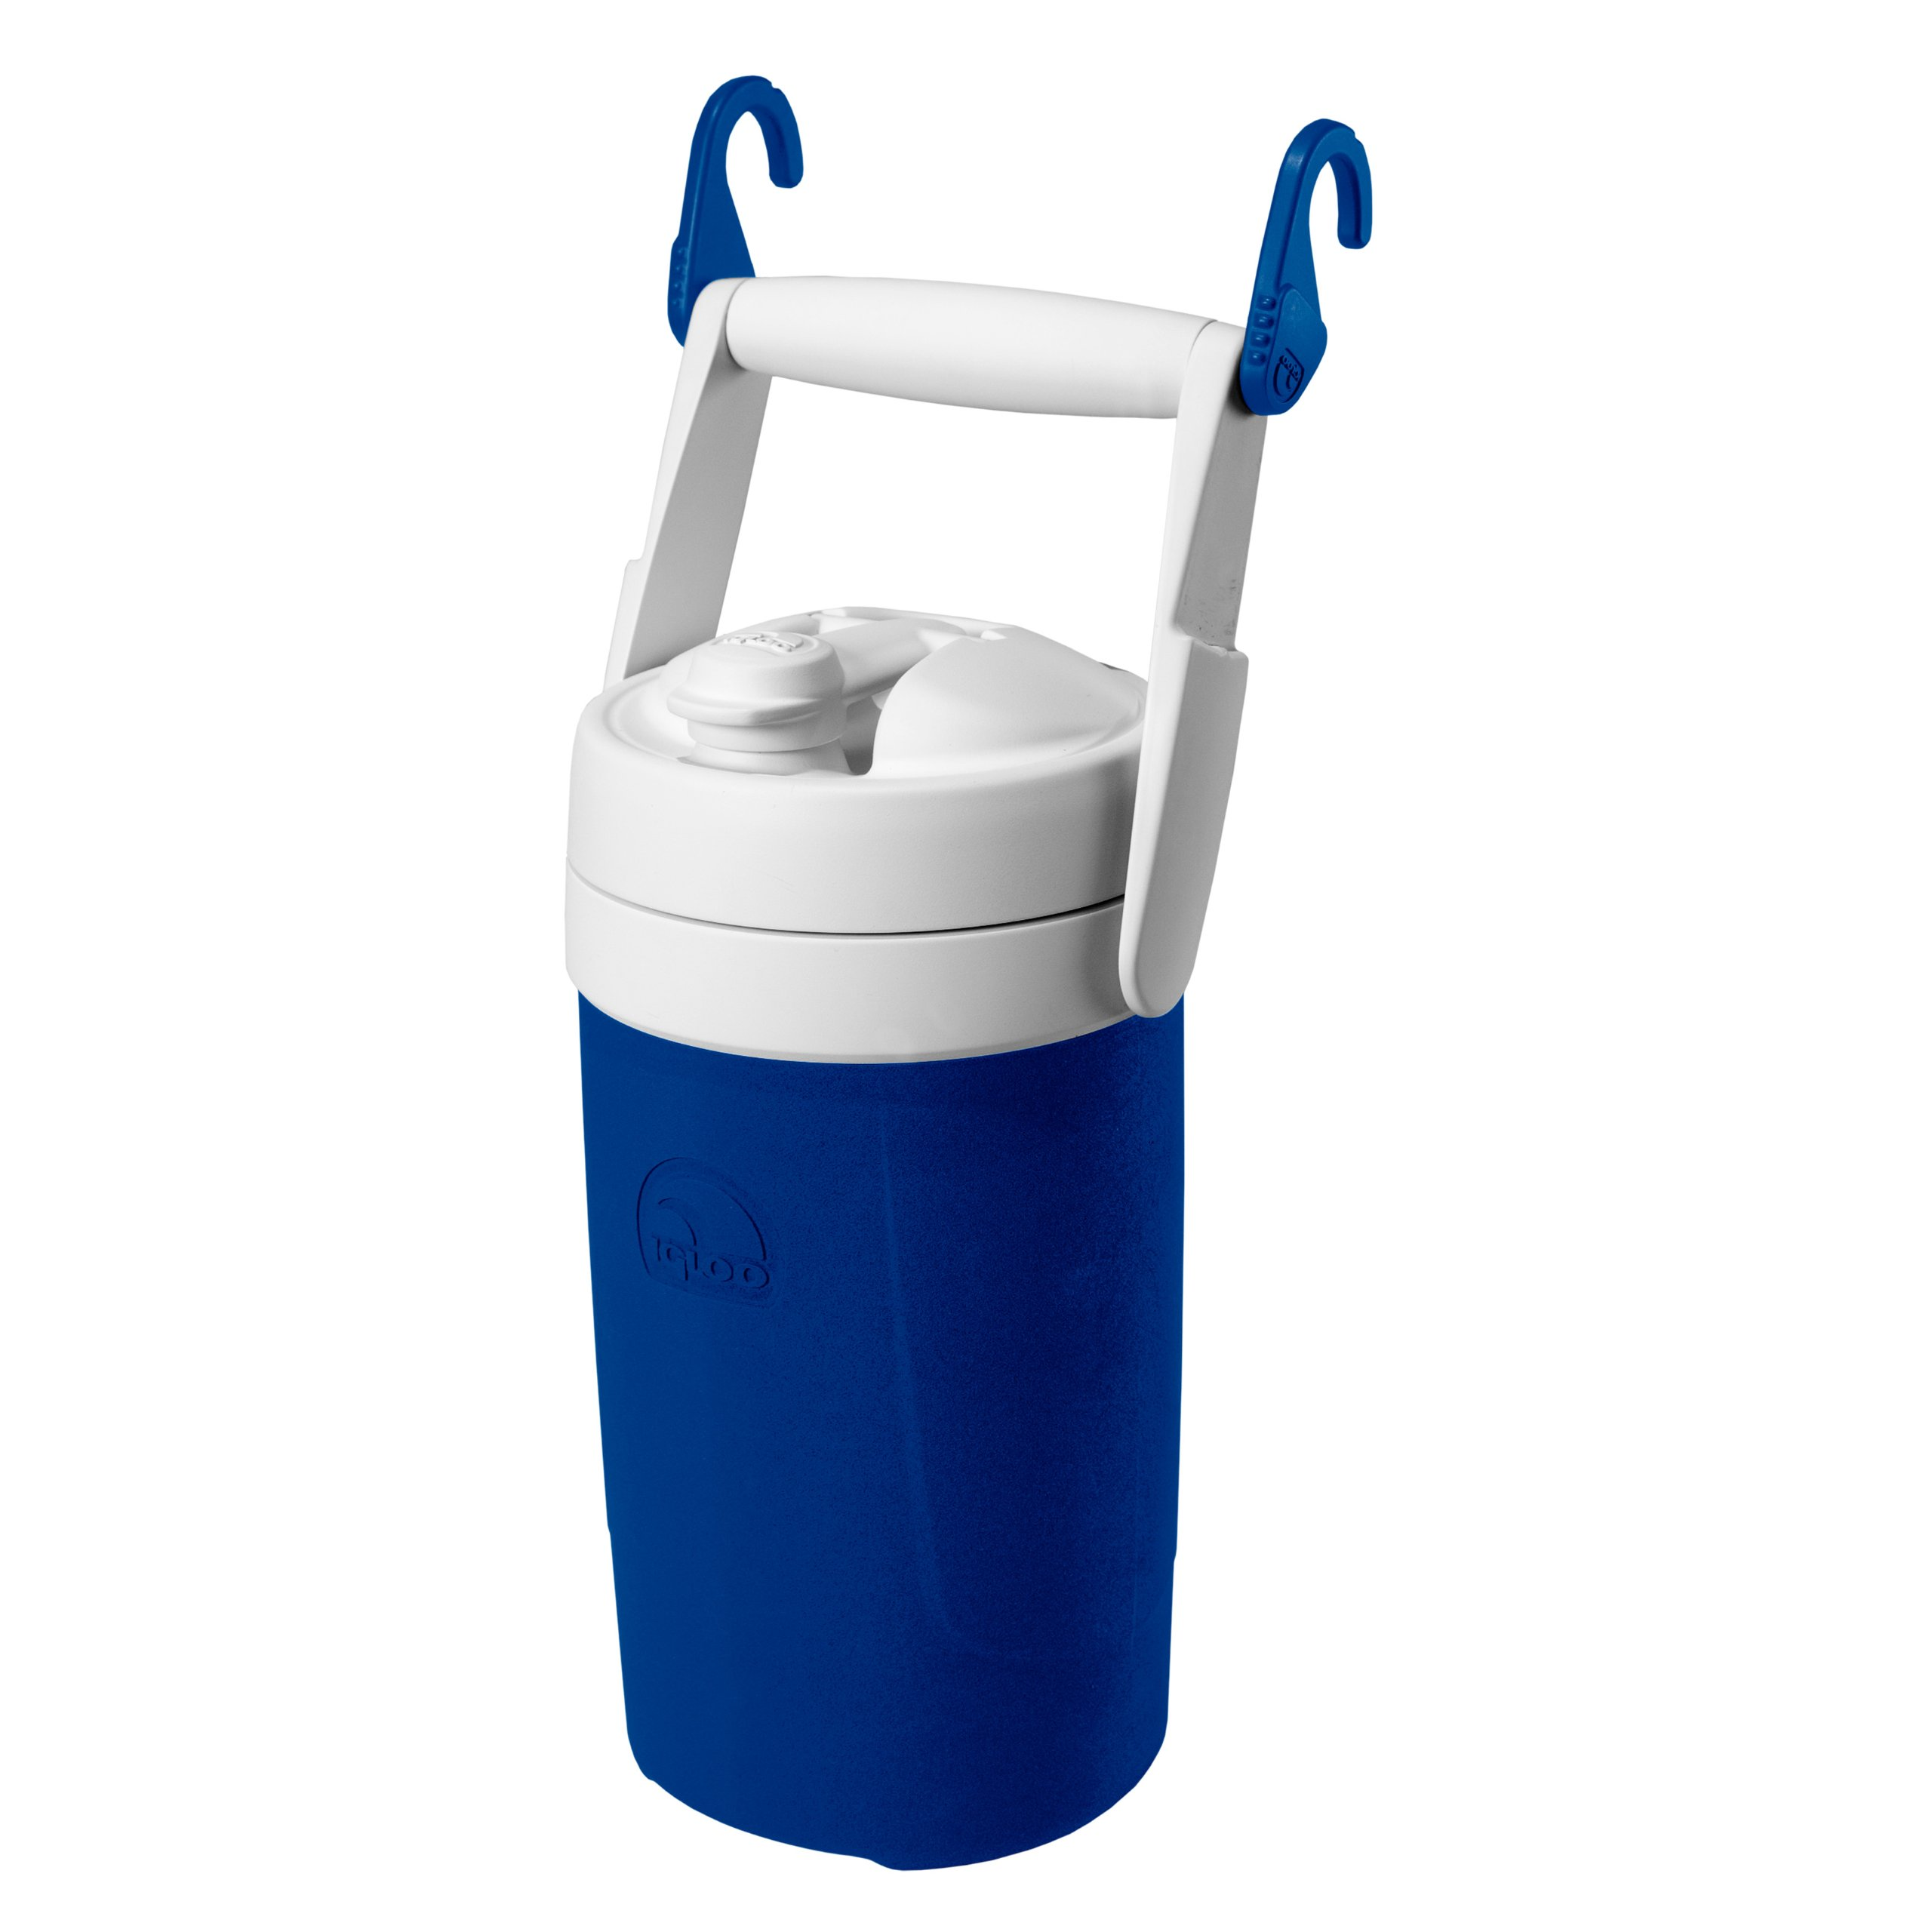 Igloo Sport Beverage Cooler with Chain Links (Majestic Blue, 1/2-Gallon)